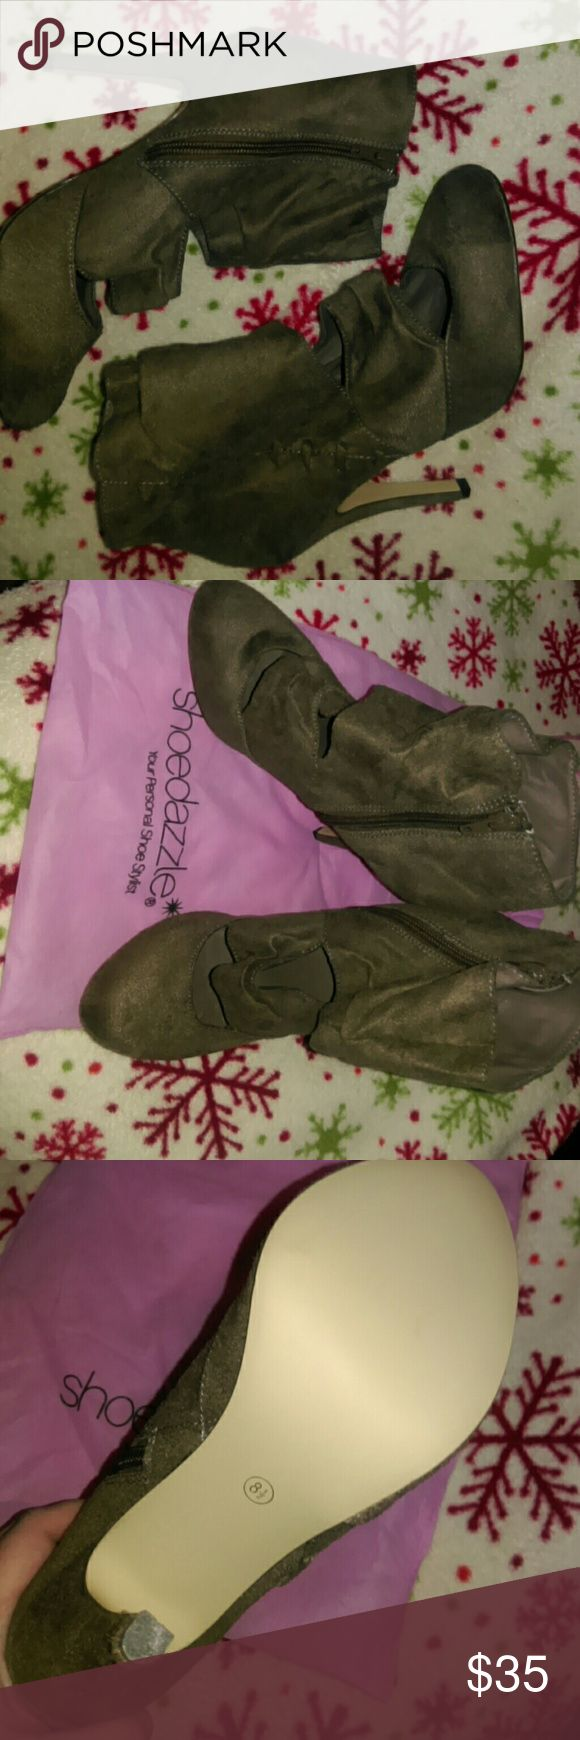 "Shoe Dazzle Booties NWOT Brown, Cut-out, Shoe Dazzle Booties w/4"" heels. These gorgeous shoes have never been worn, and unfortunately just sit in their dust bag in  my closet. Shoe Dazzle Shoes"